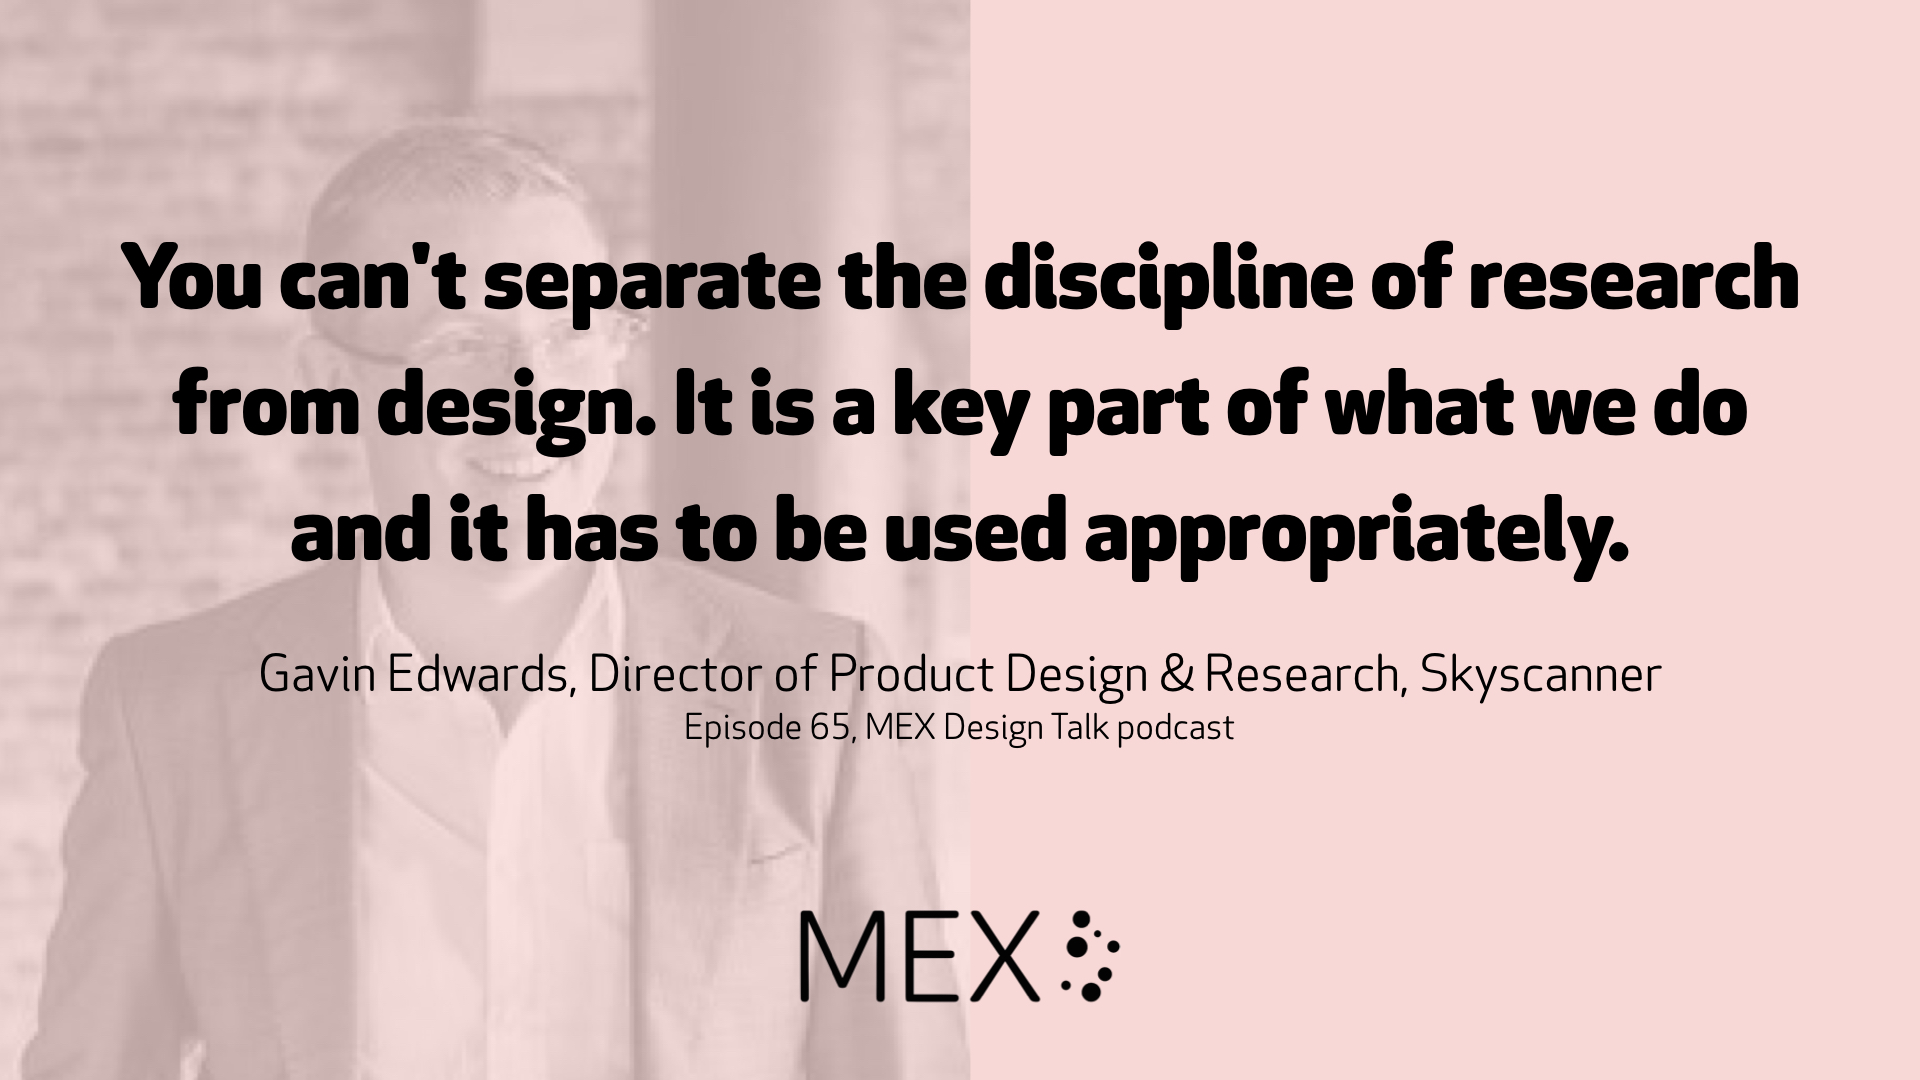 You can't separate the discipline of research from design. It is a key part of what we do and it has to be used appropriately. Gavin Edwards, Director of Product Design & Research, Skyscanner Episode 65, MEX Design Talk podcast